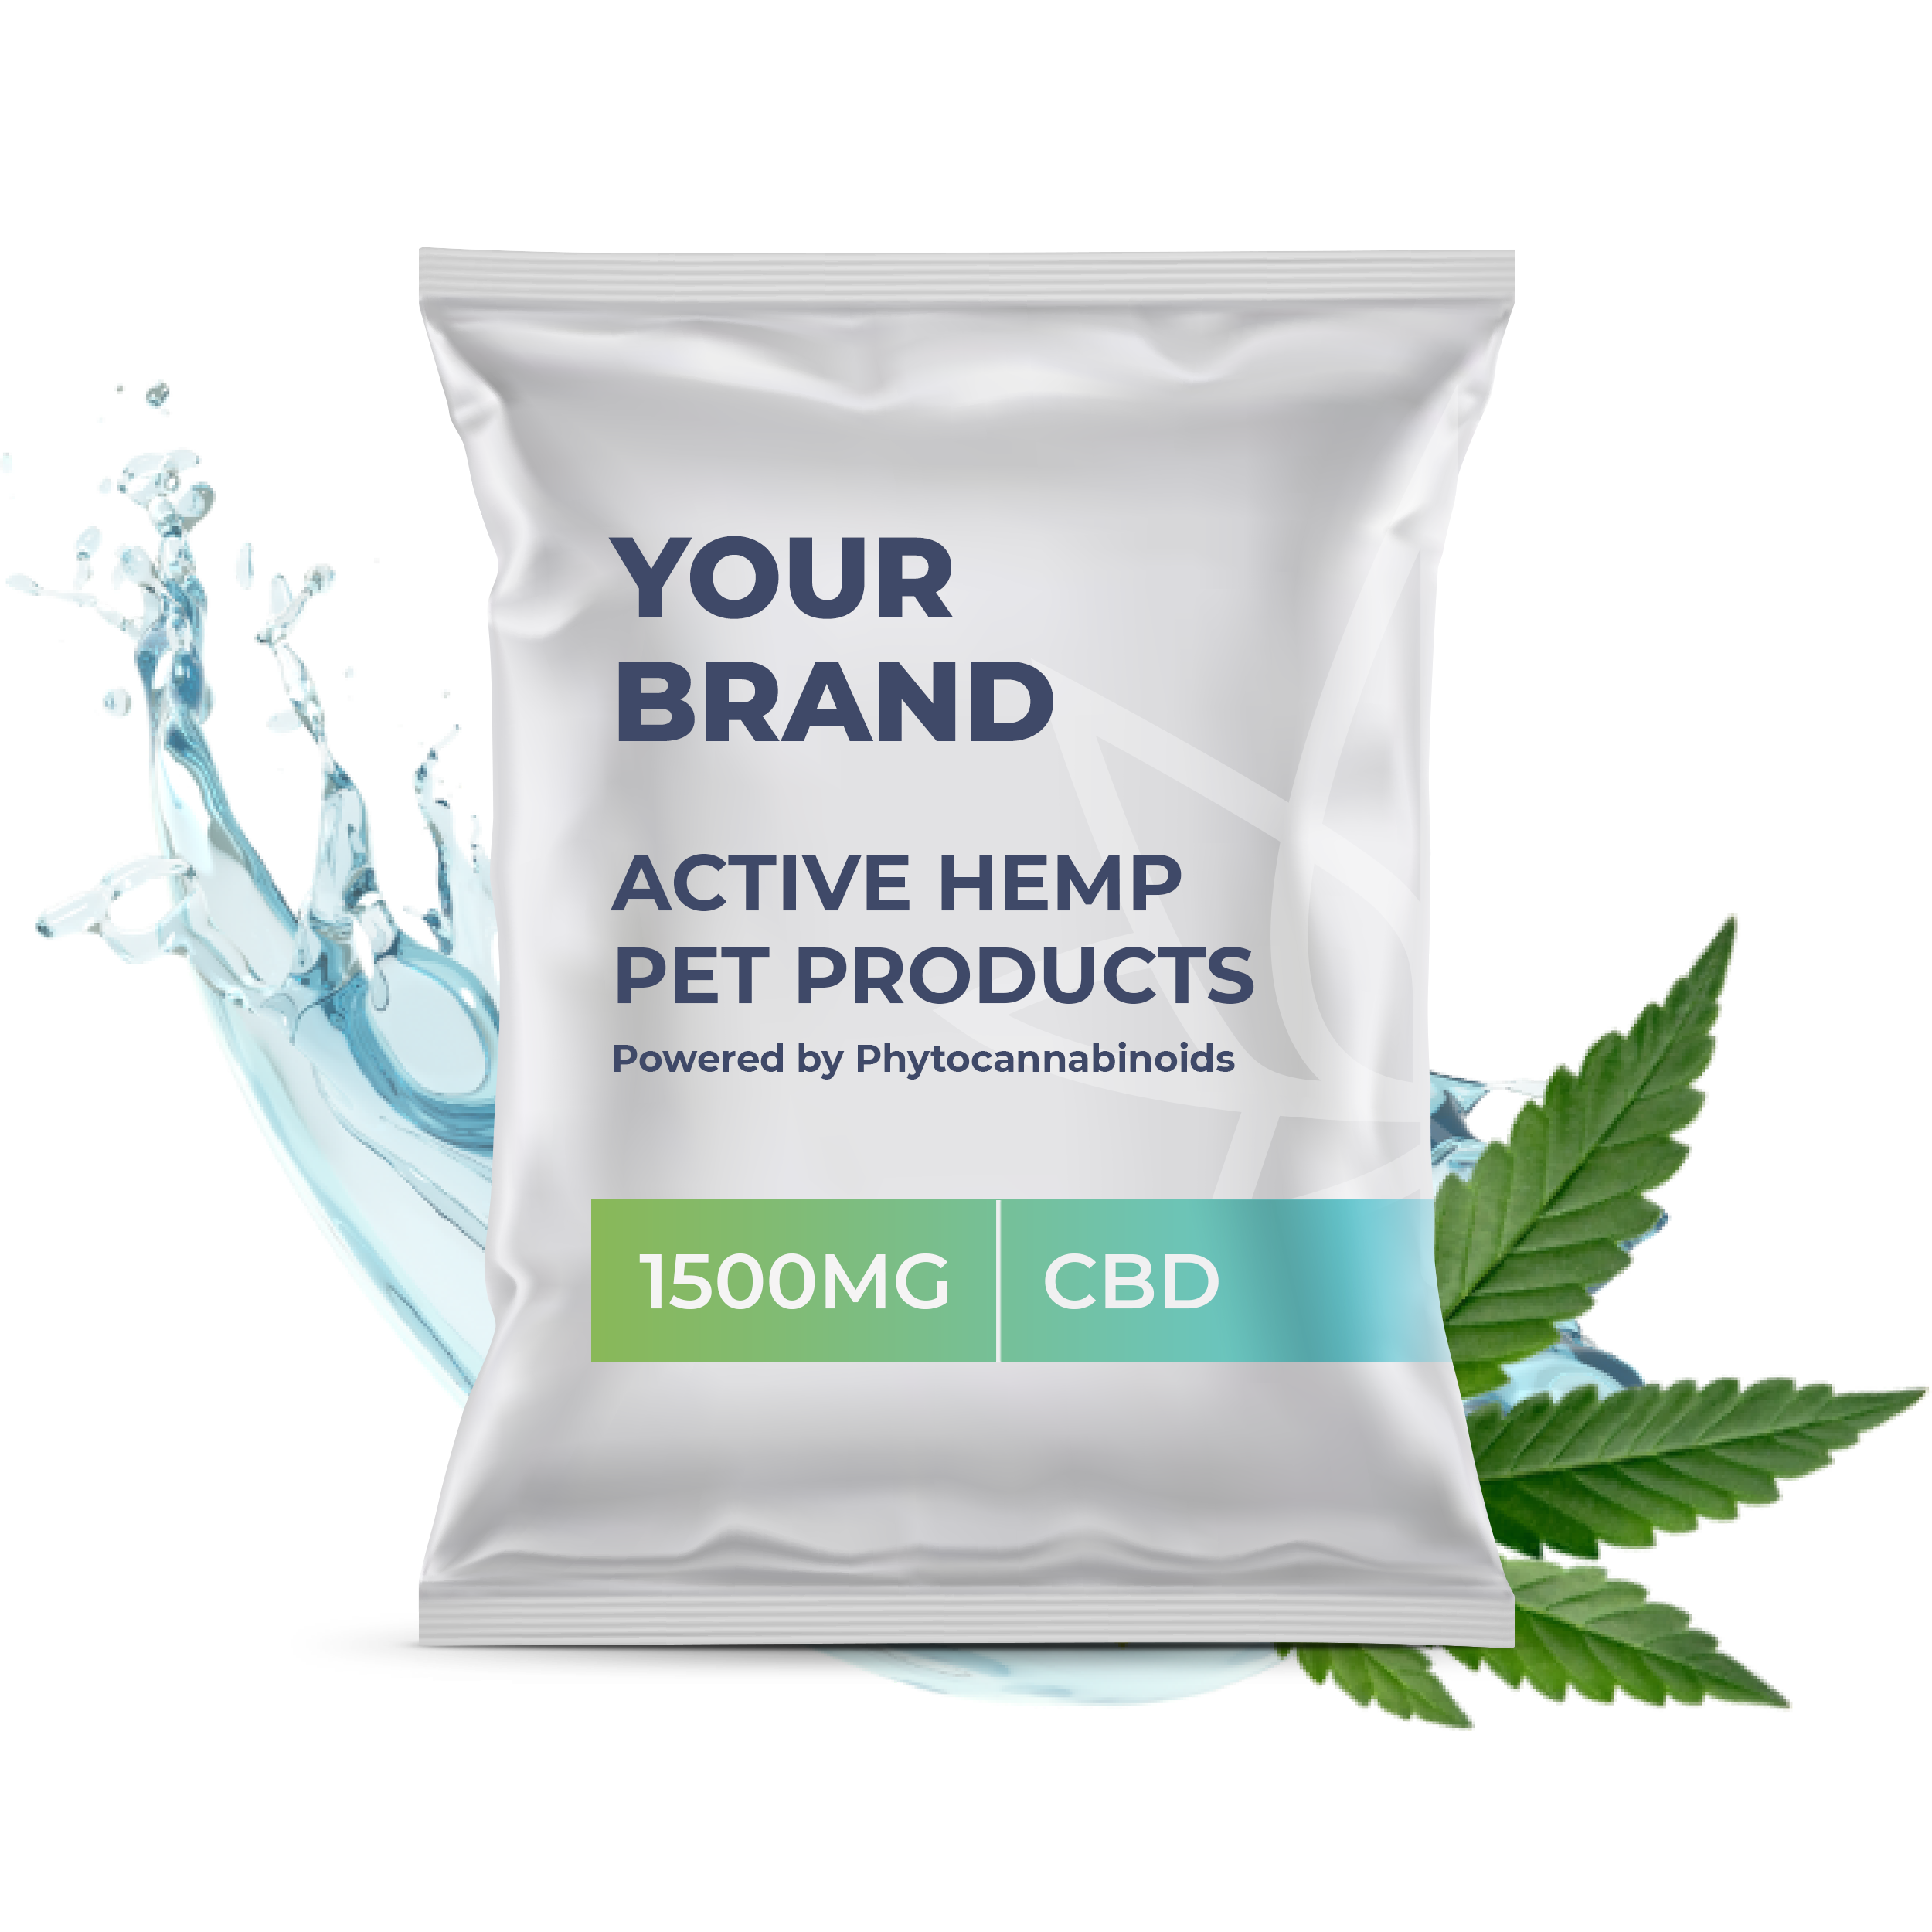 White & Private label Hemp CBD Products Manufacturers in UK & across Europe